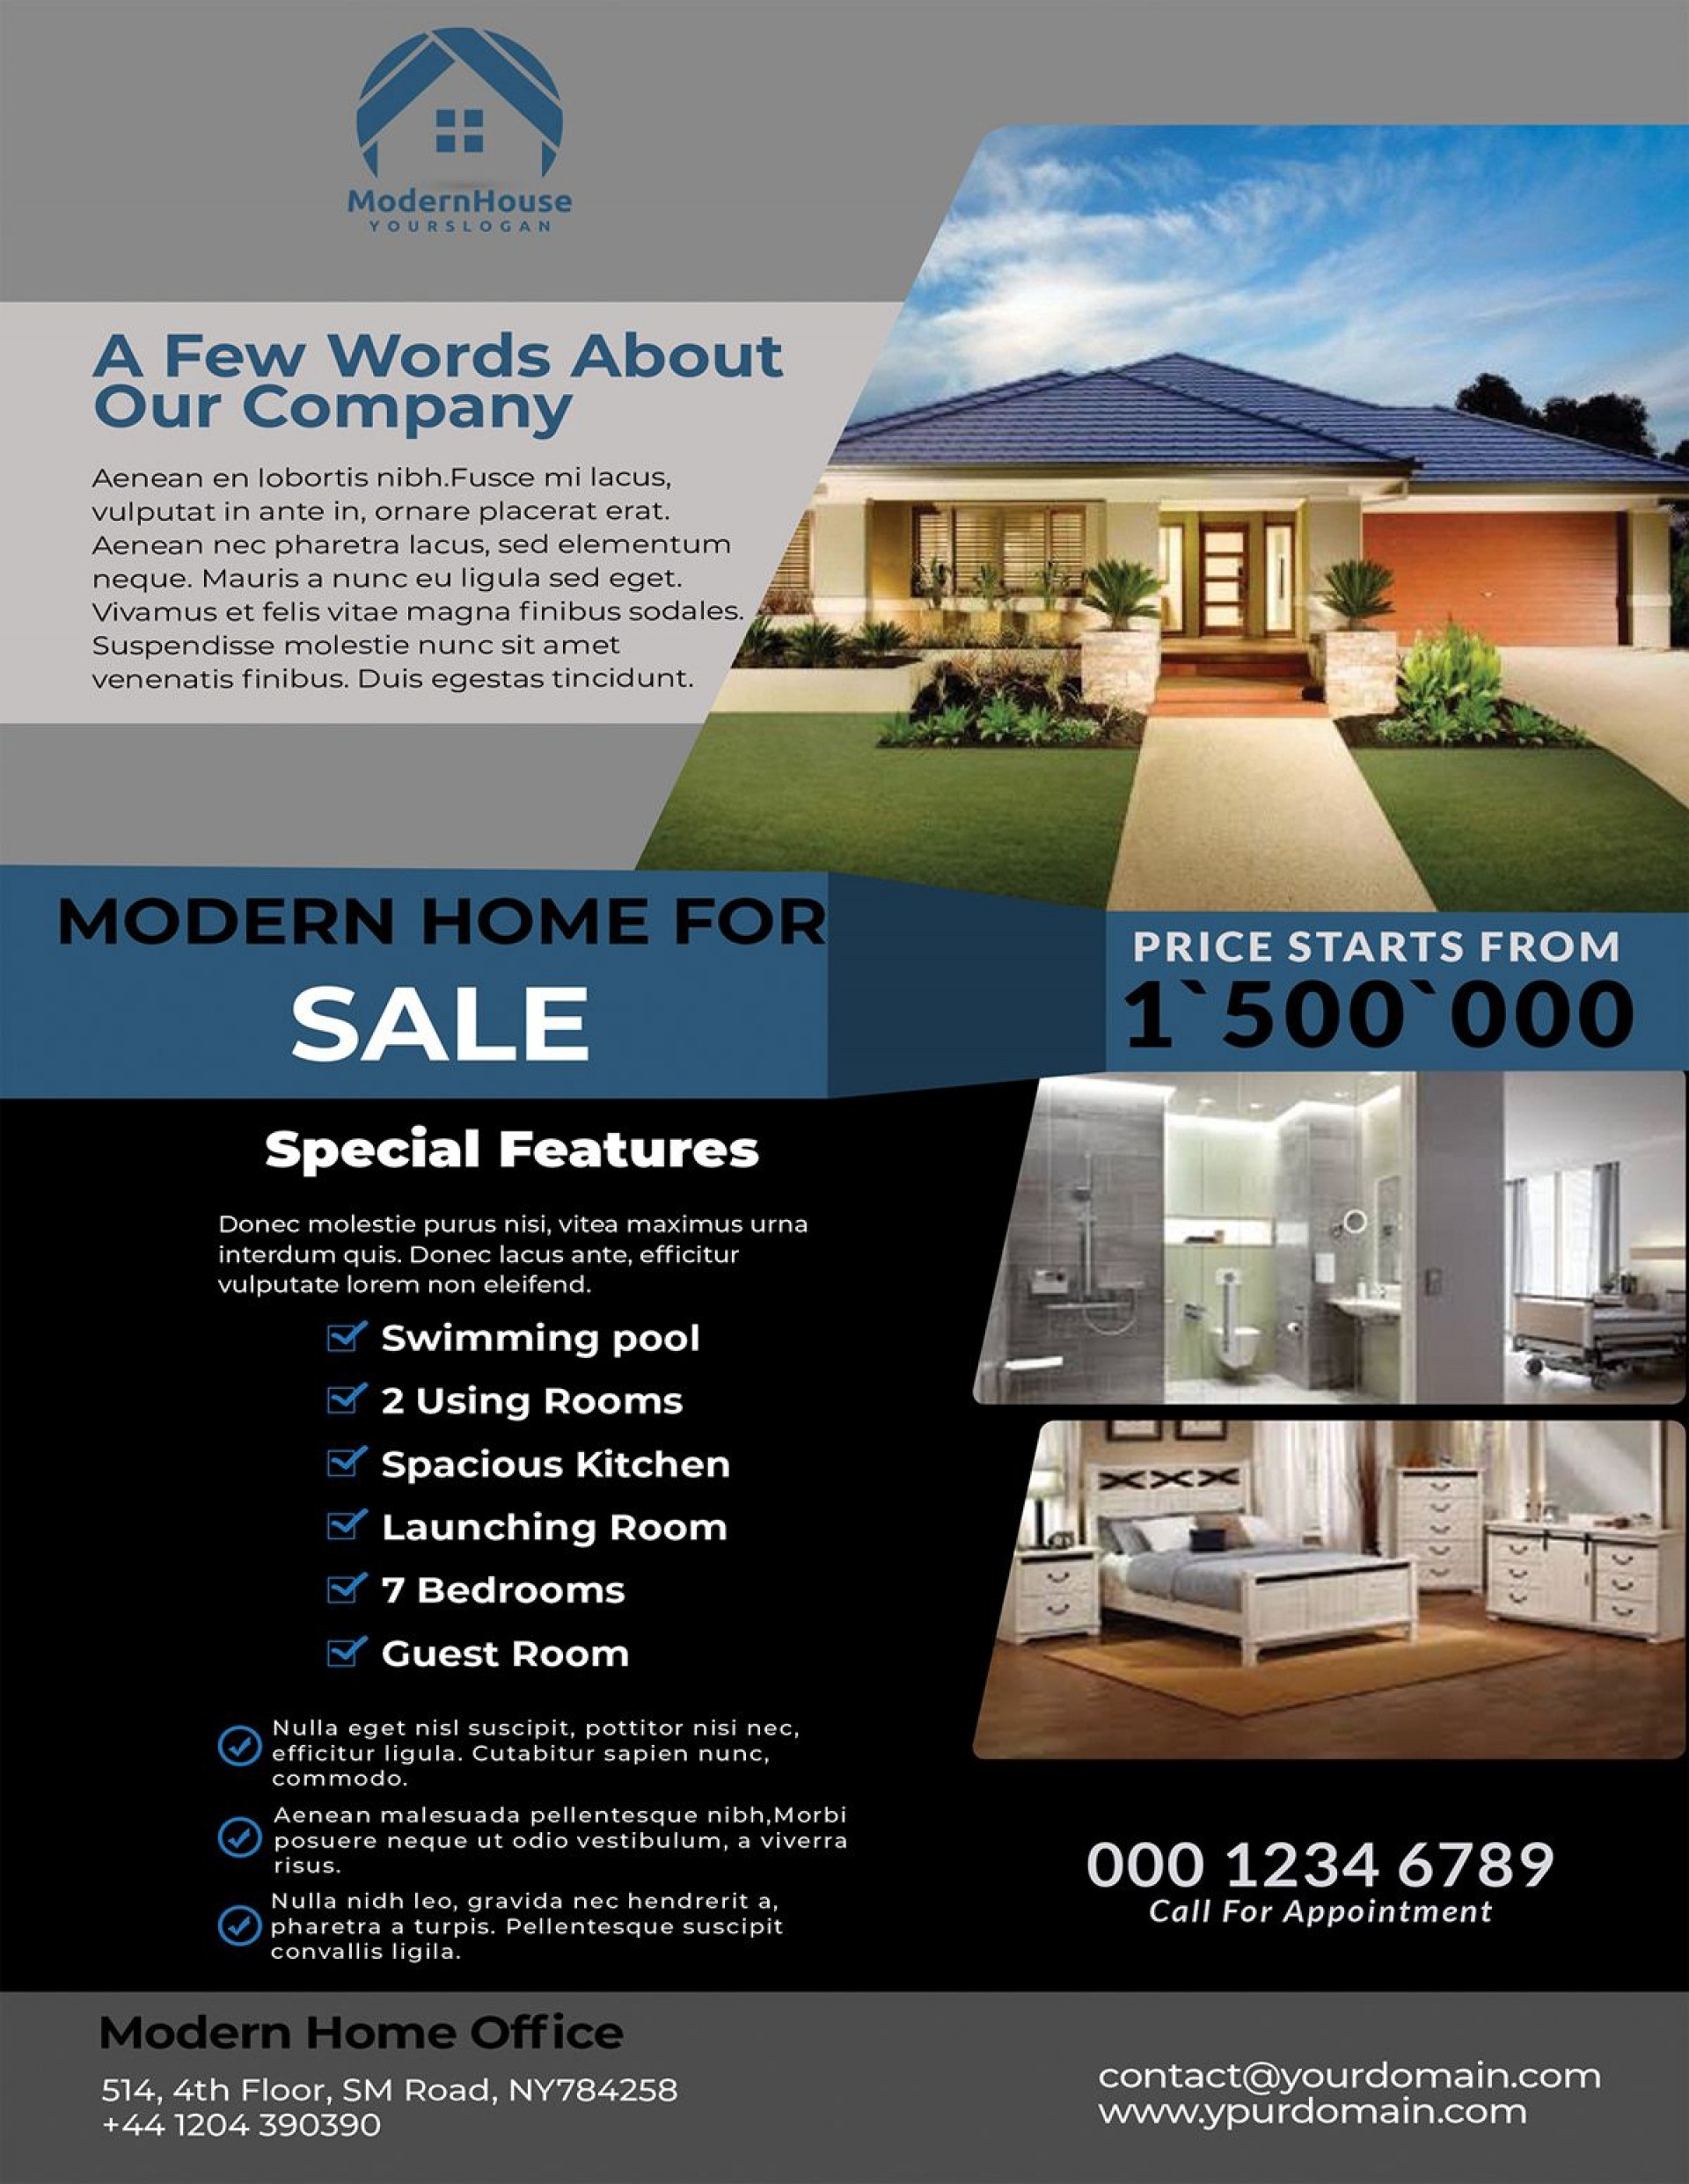 001 Dreaded For Sale Flyer Template Image  Car Ad Microsoft Word House1920